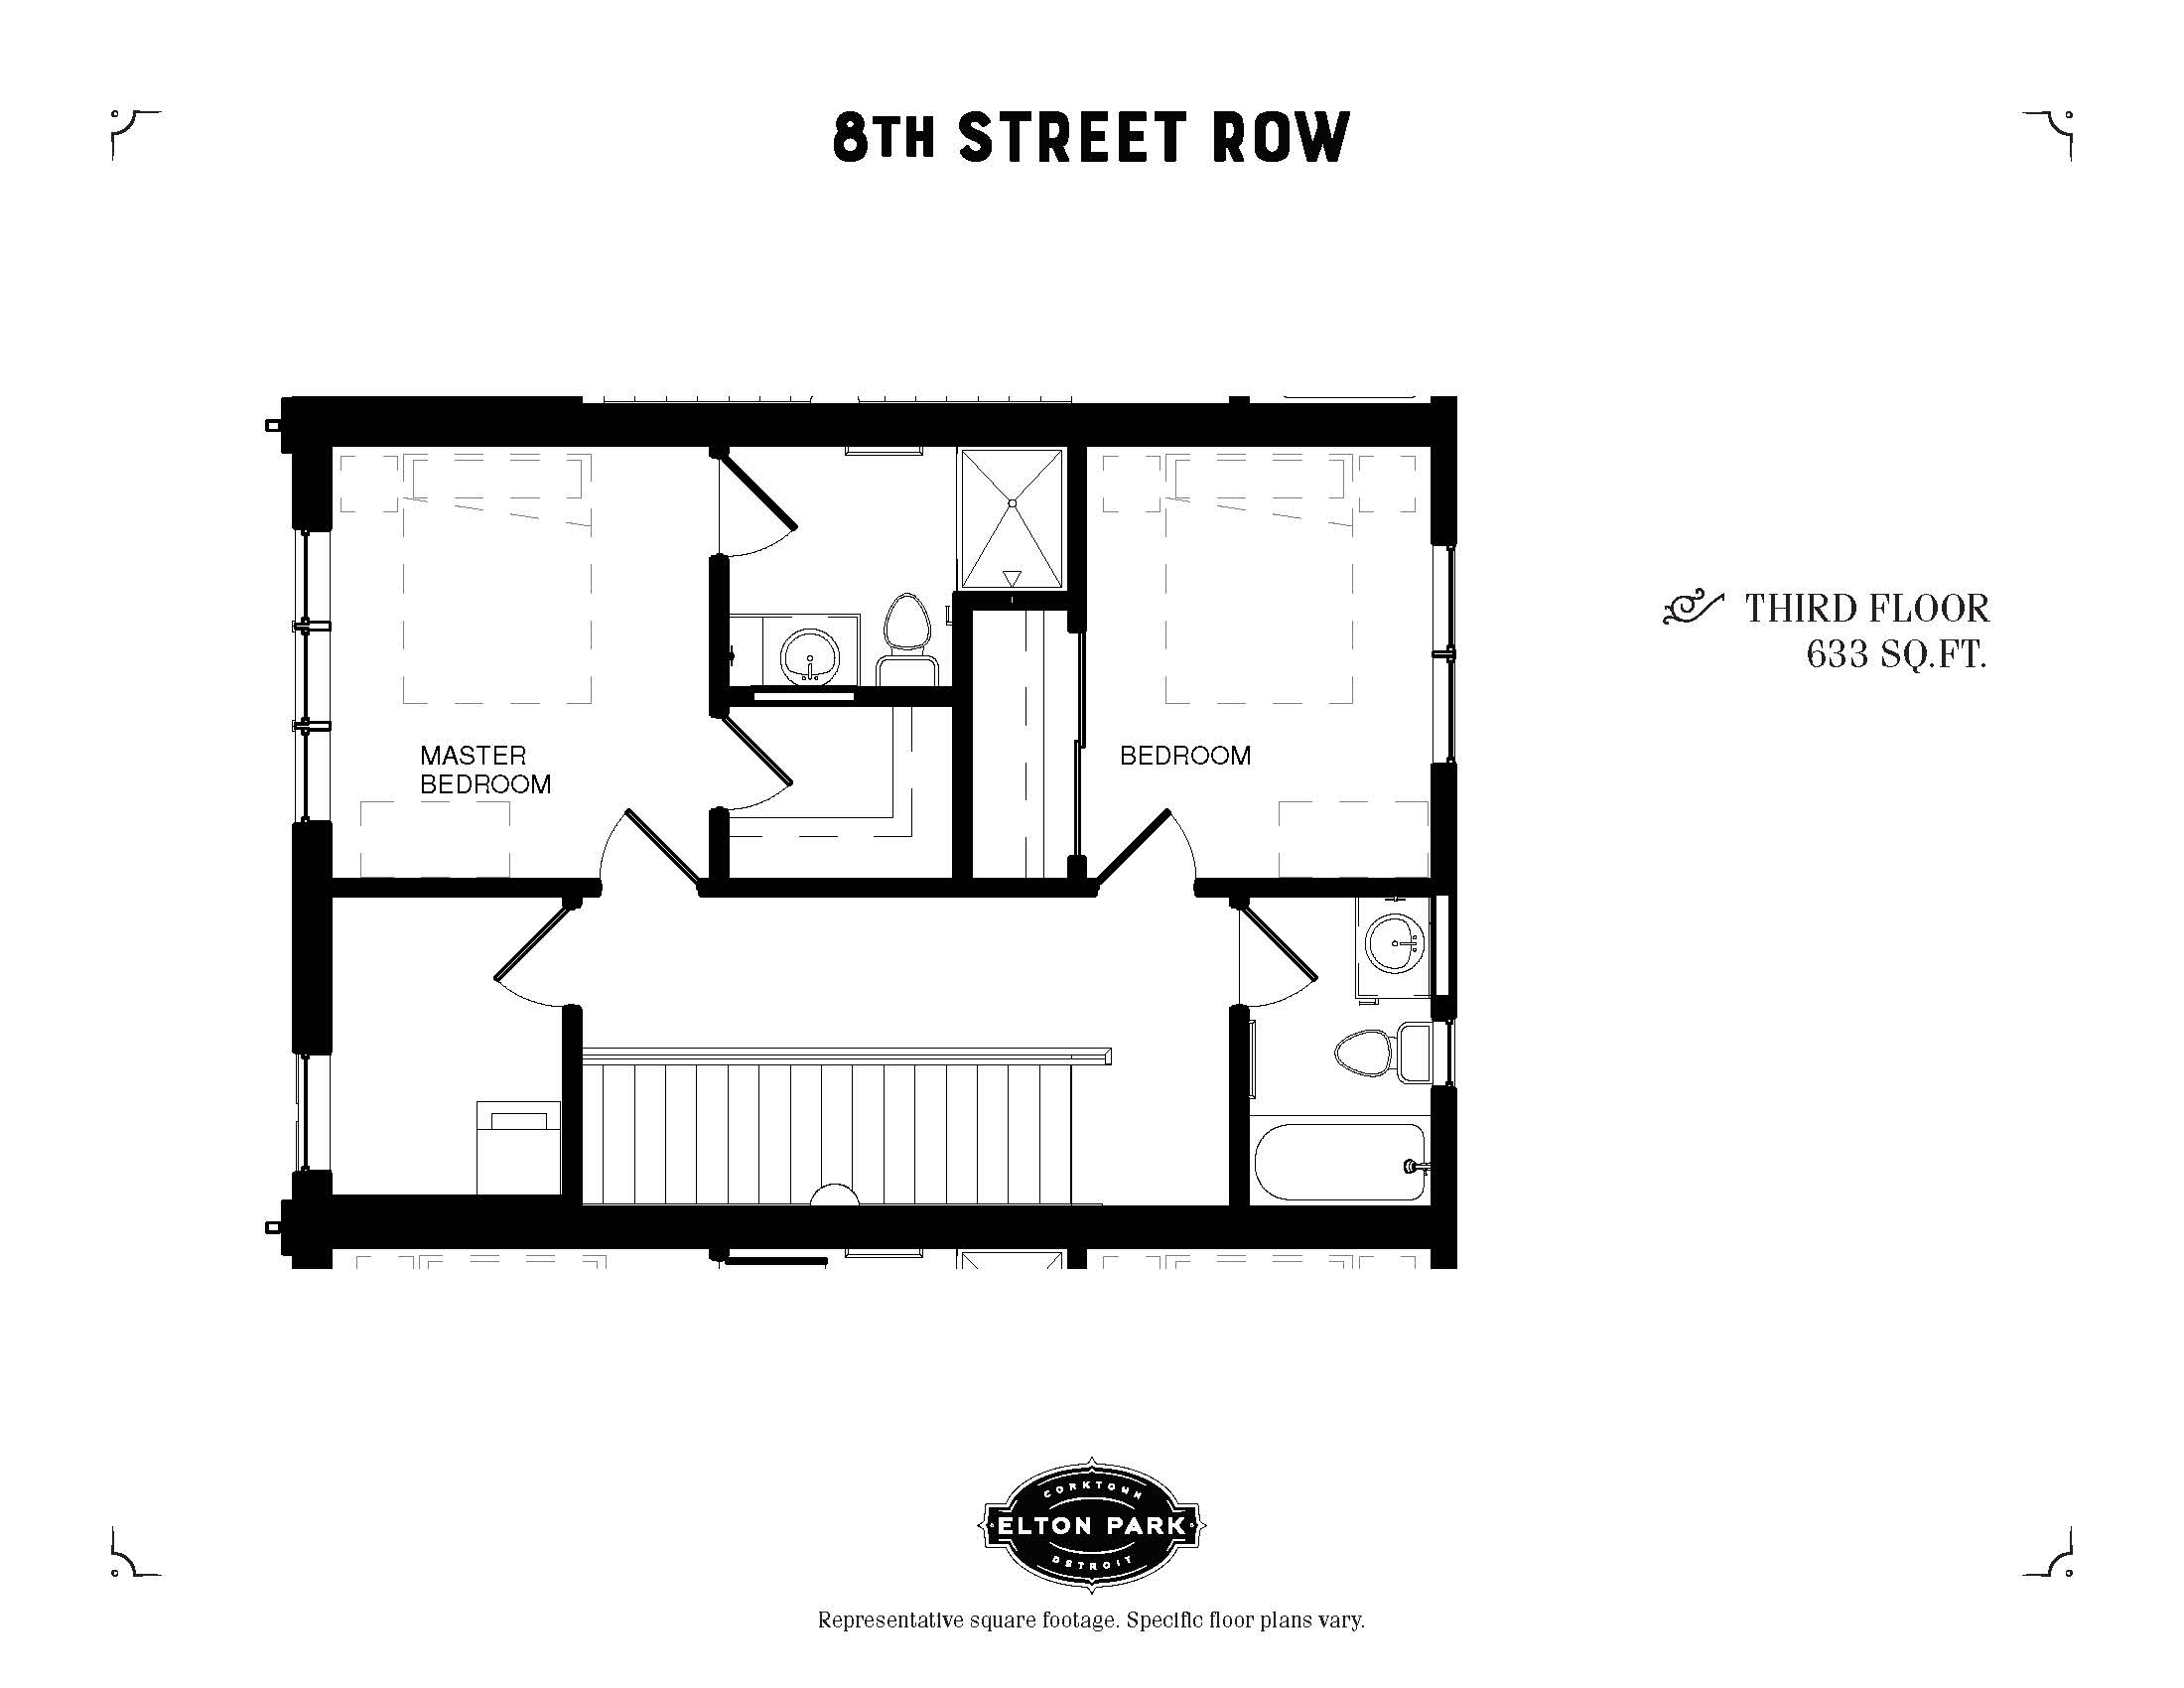 8th Street Row Third Floor